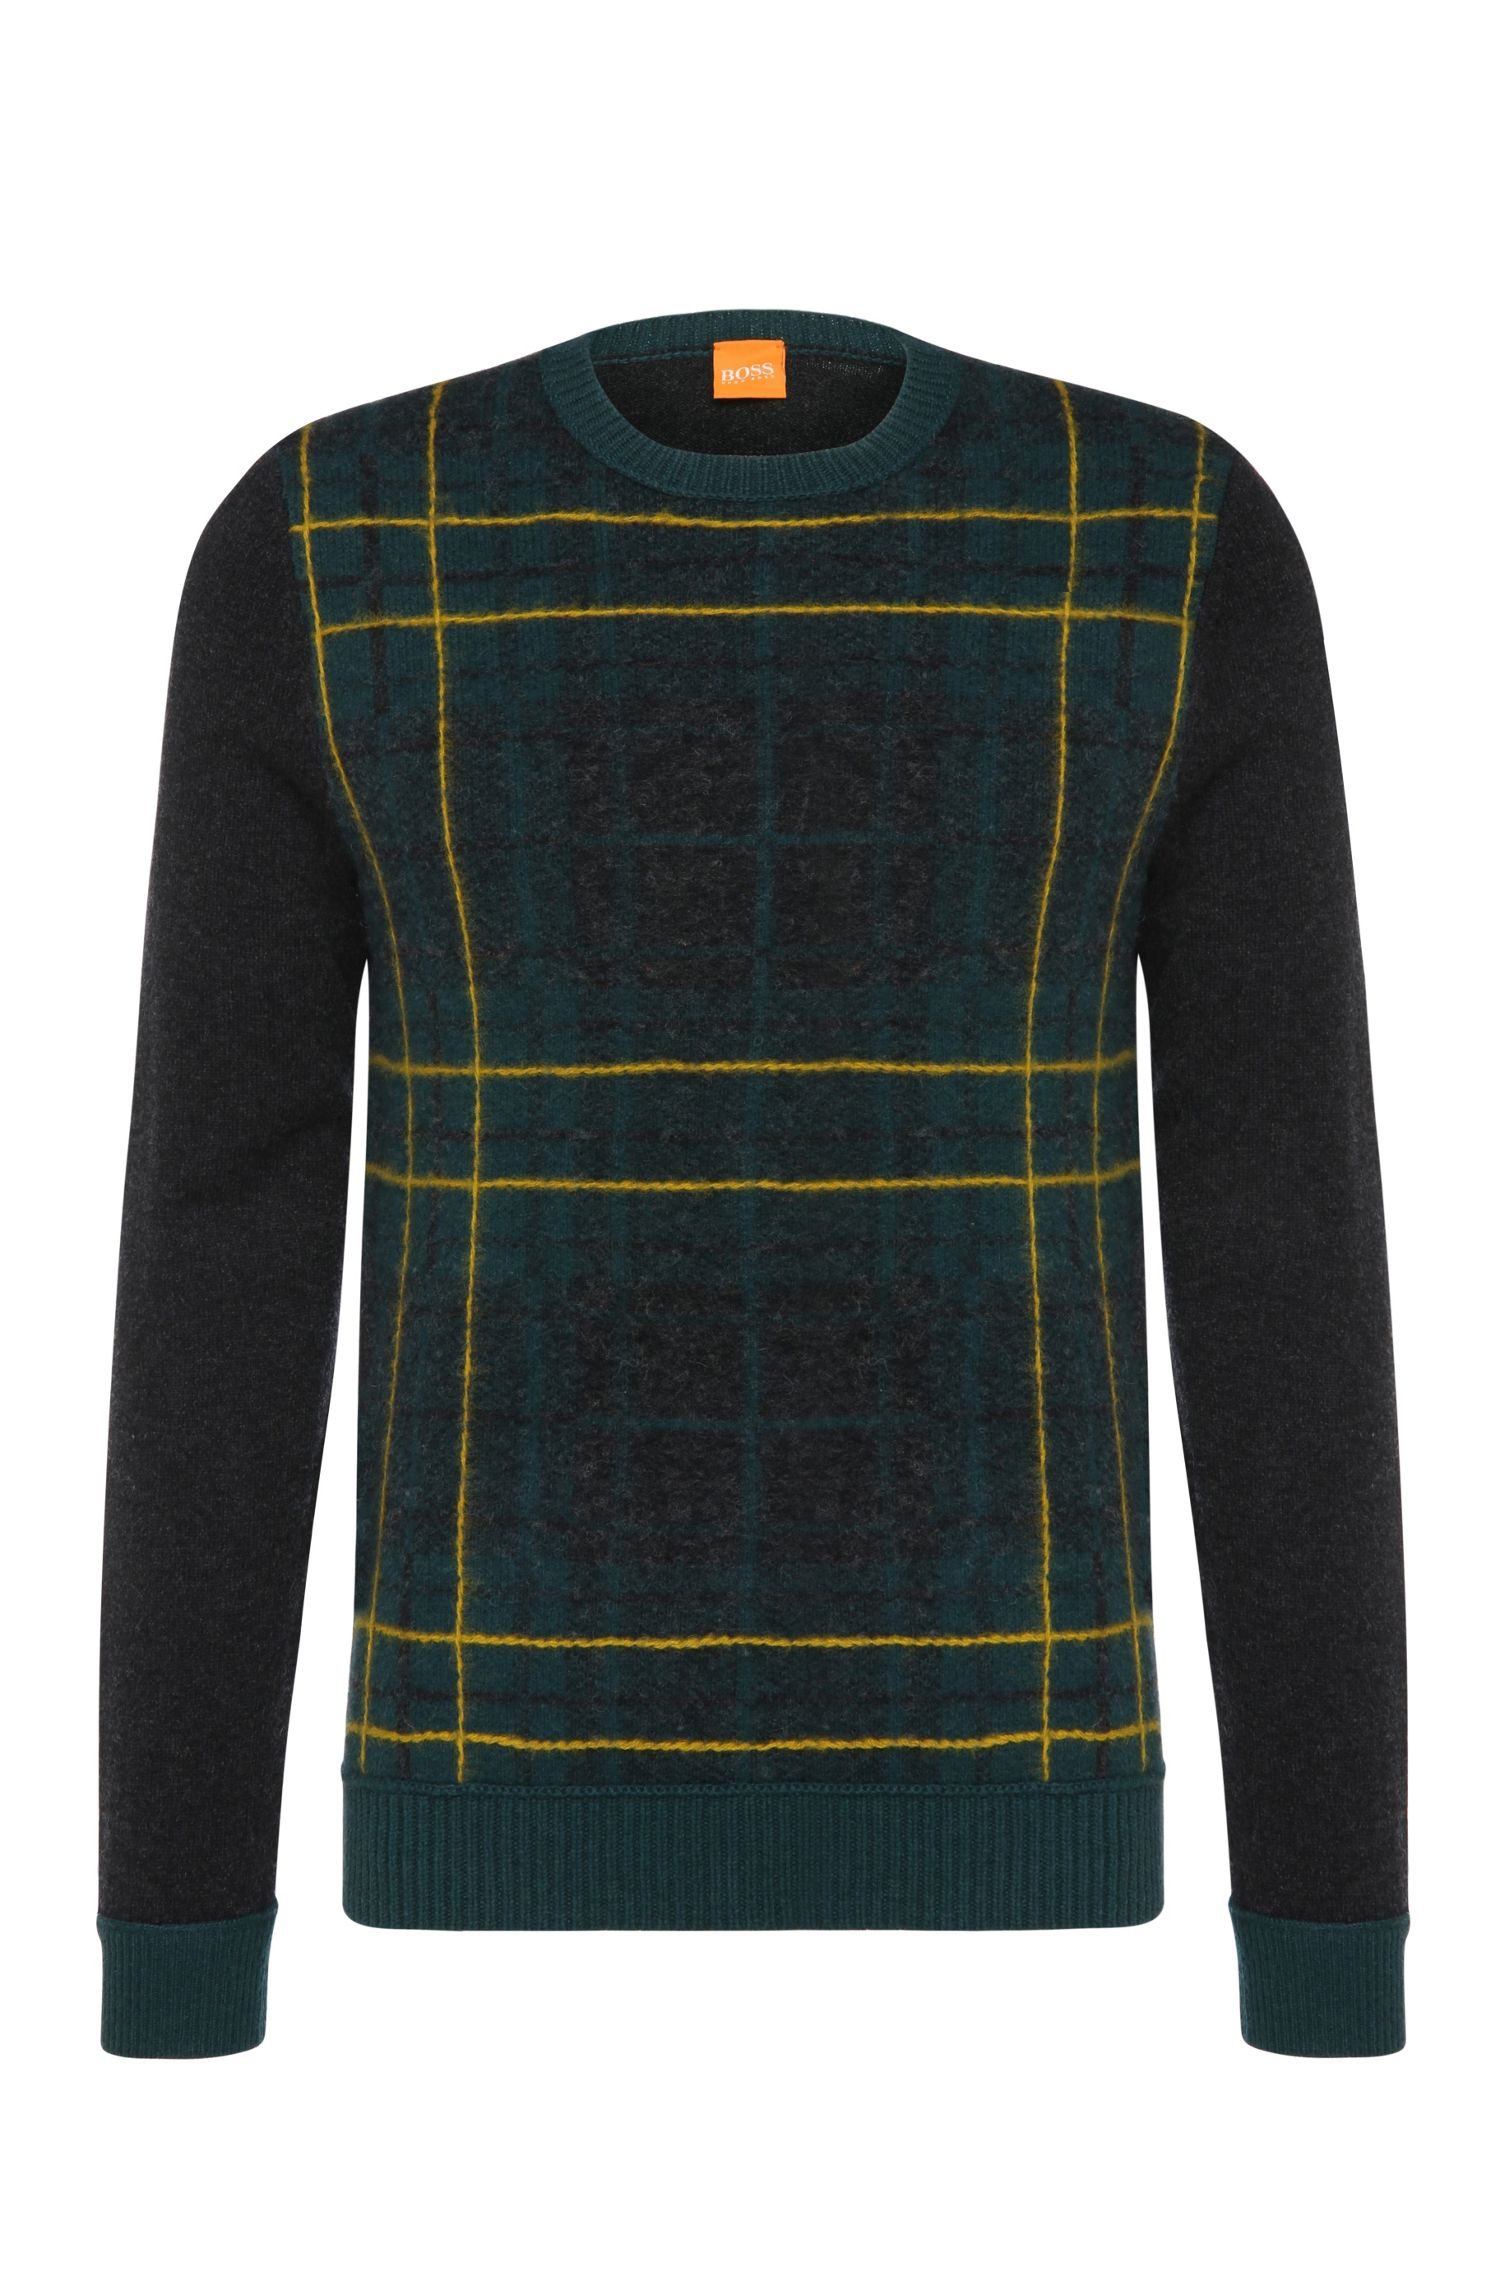 'Abrush' | Virgin Wool Tartan Sweater